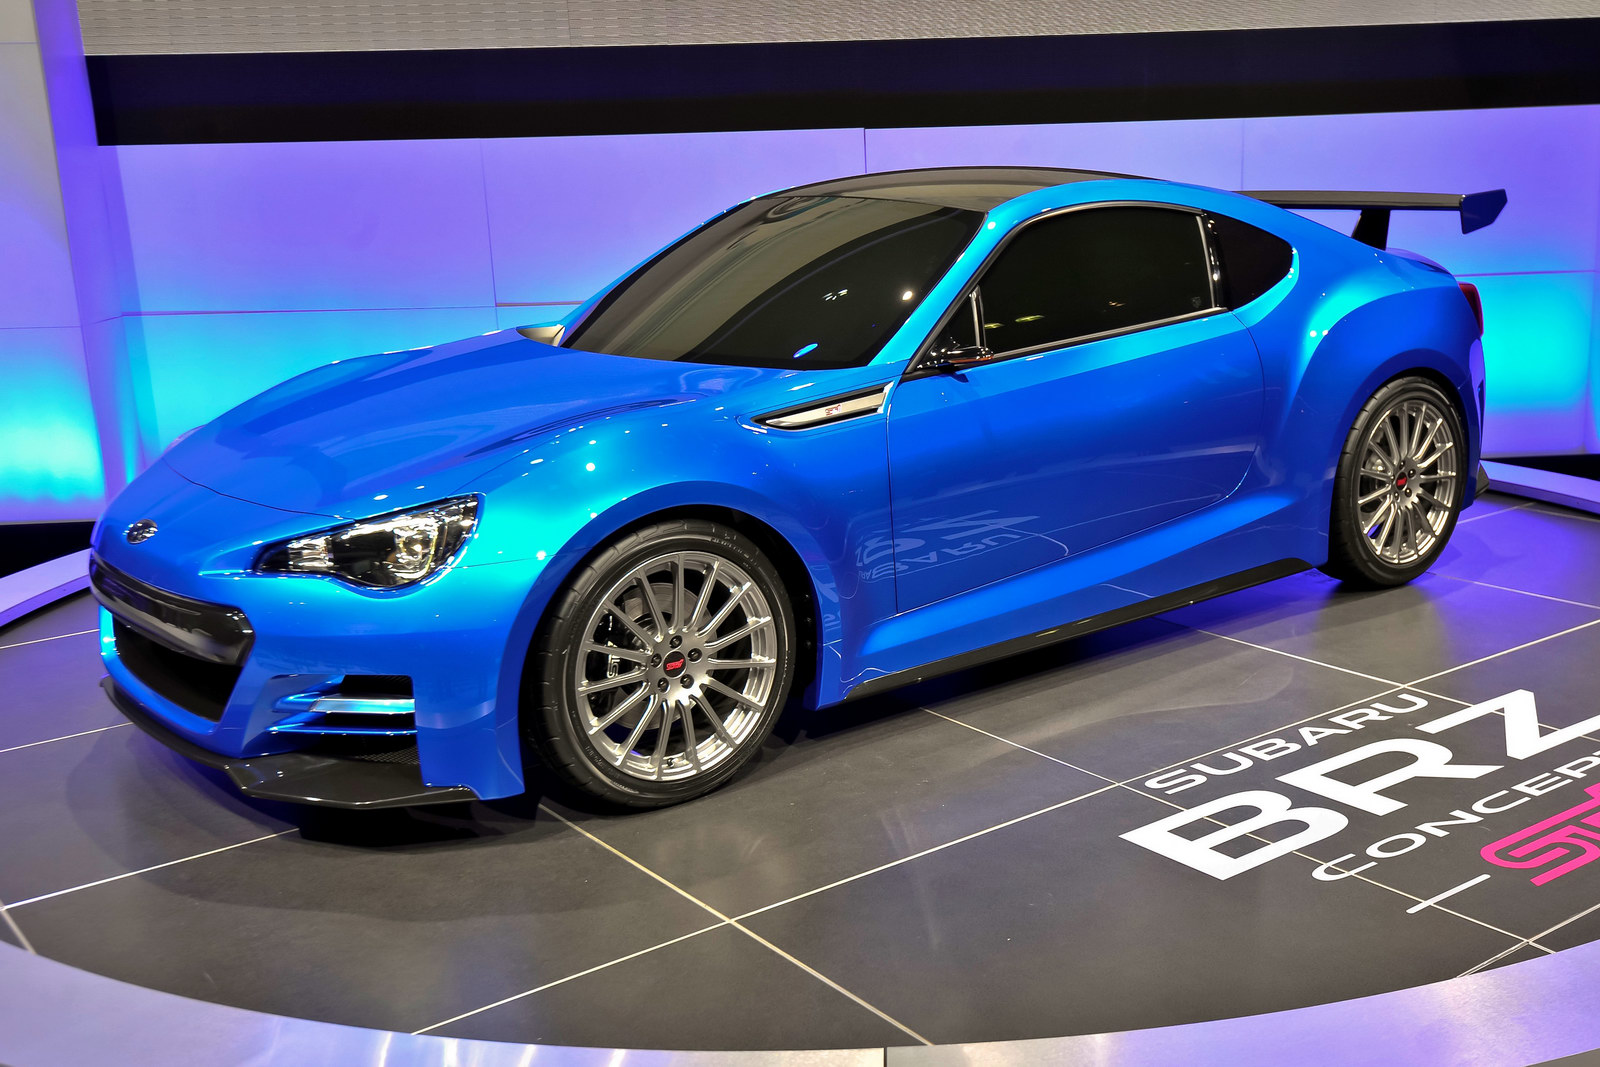 Subaru-BRZ-STI-Concept-side-view